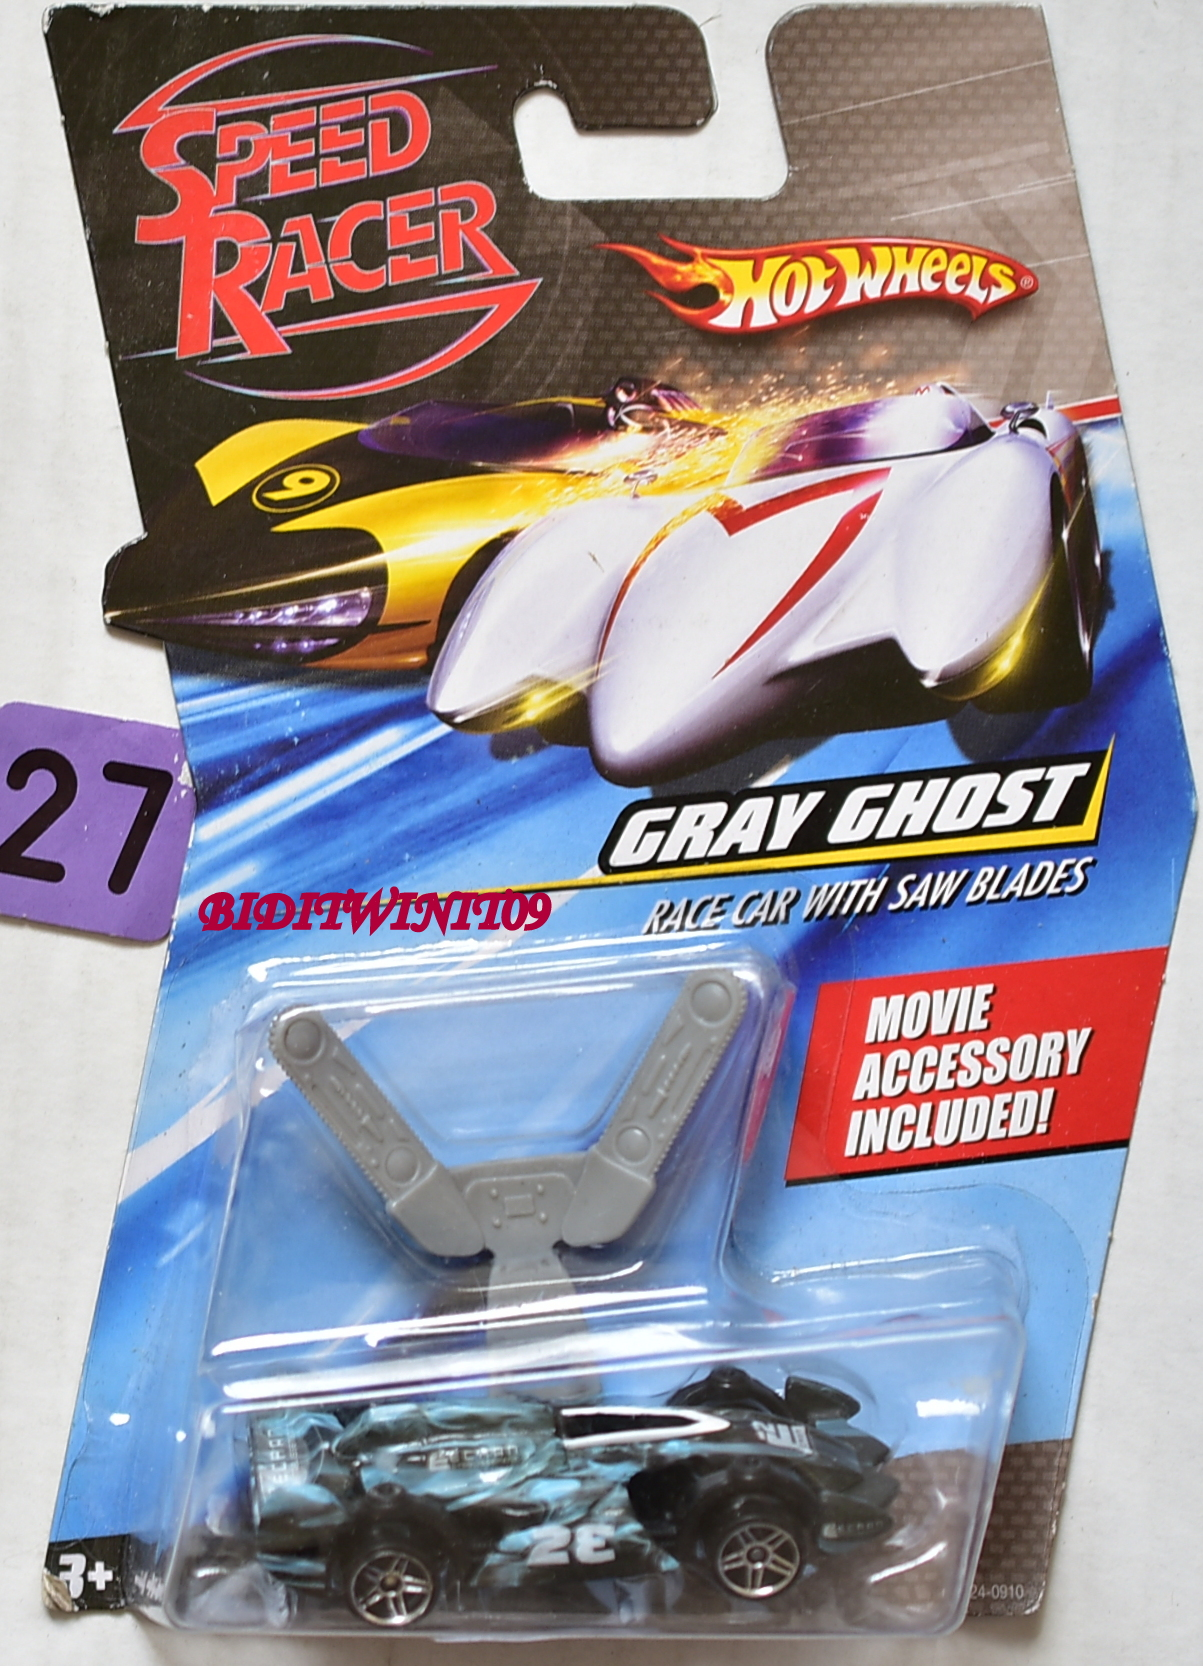 HOT WHEELS SPEED RACER GRAY SHOST RACE CAR WITH SAW BLADES E+